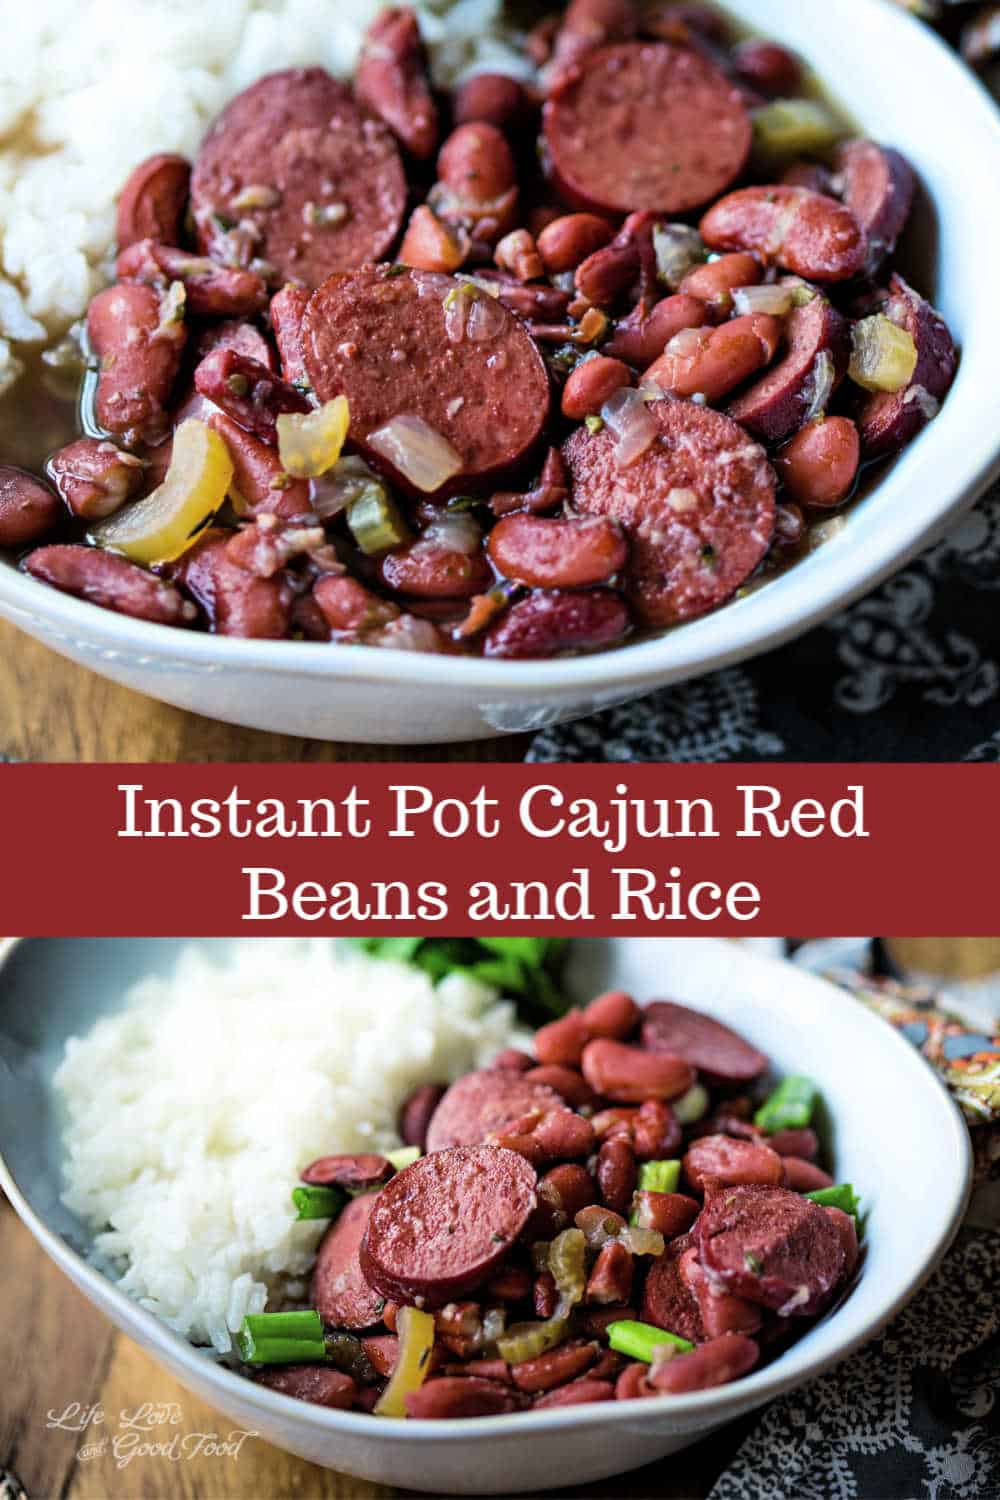 Pressure Cooker Red Beans and Rice is a delicious one-pot pantry meal that's easy on your budget. Flavored with onions, celery, garlic, and Creole spices, this easy recipe can be made with any type of smoked sausage like kielbasa or andouille. You may also omit the sausage all together to make a tasty vegetarian red beans and rice.